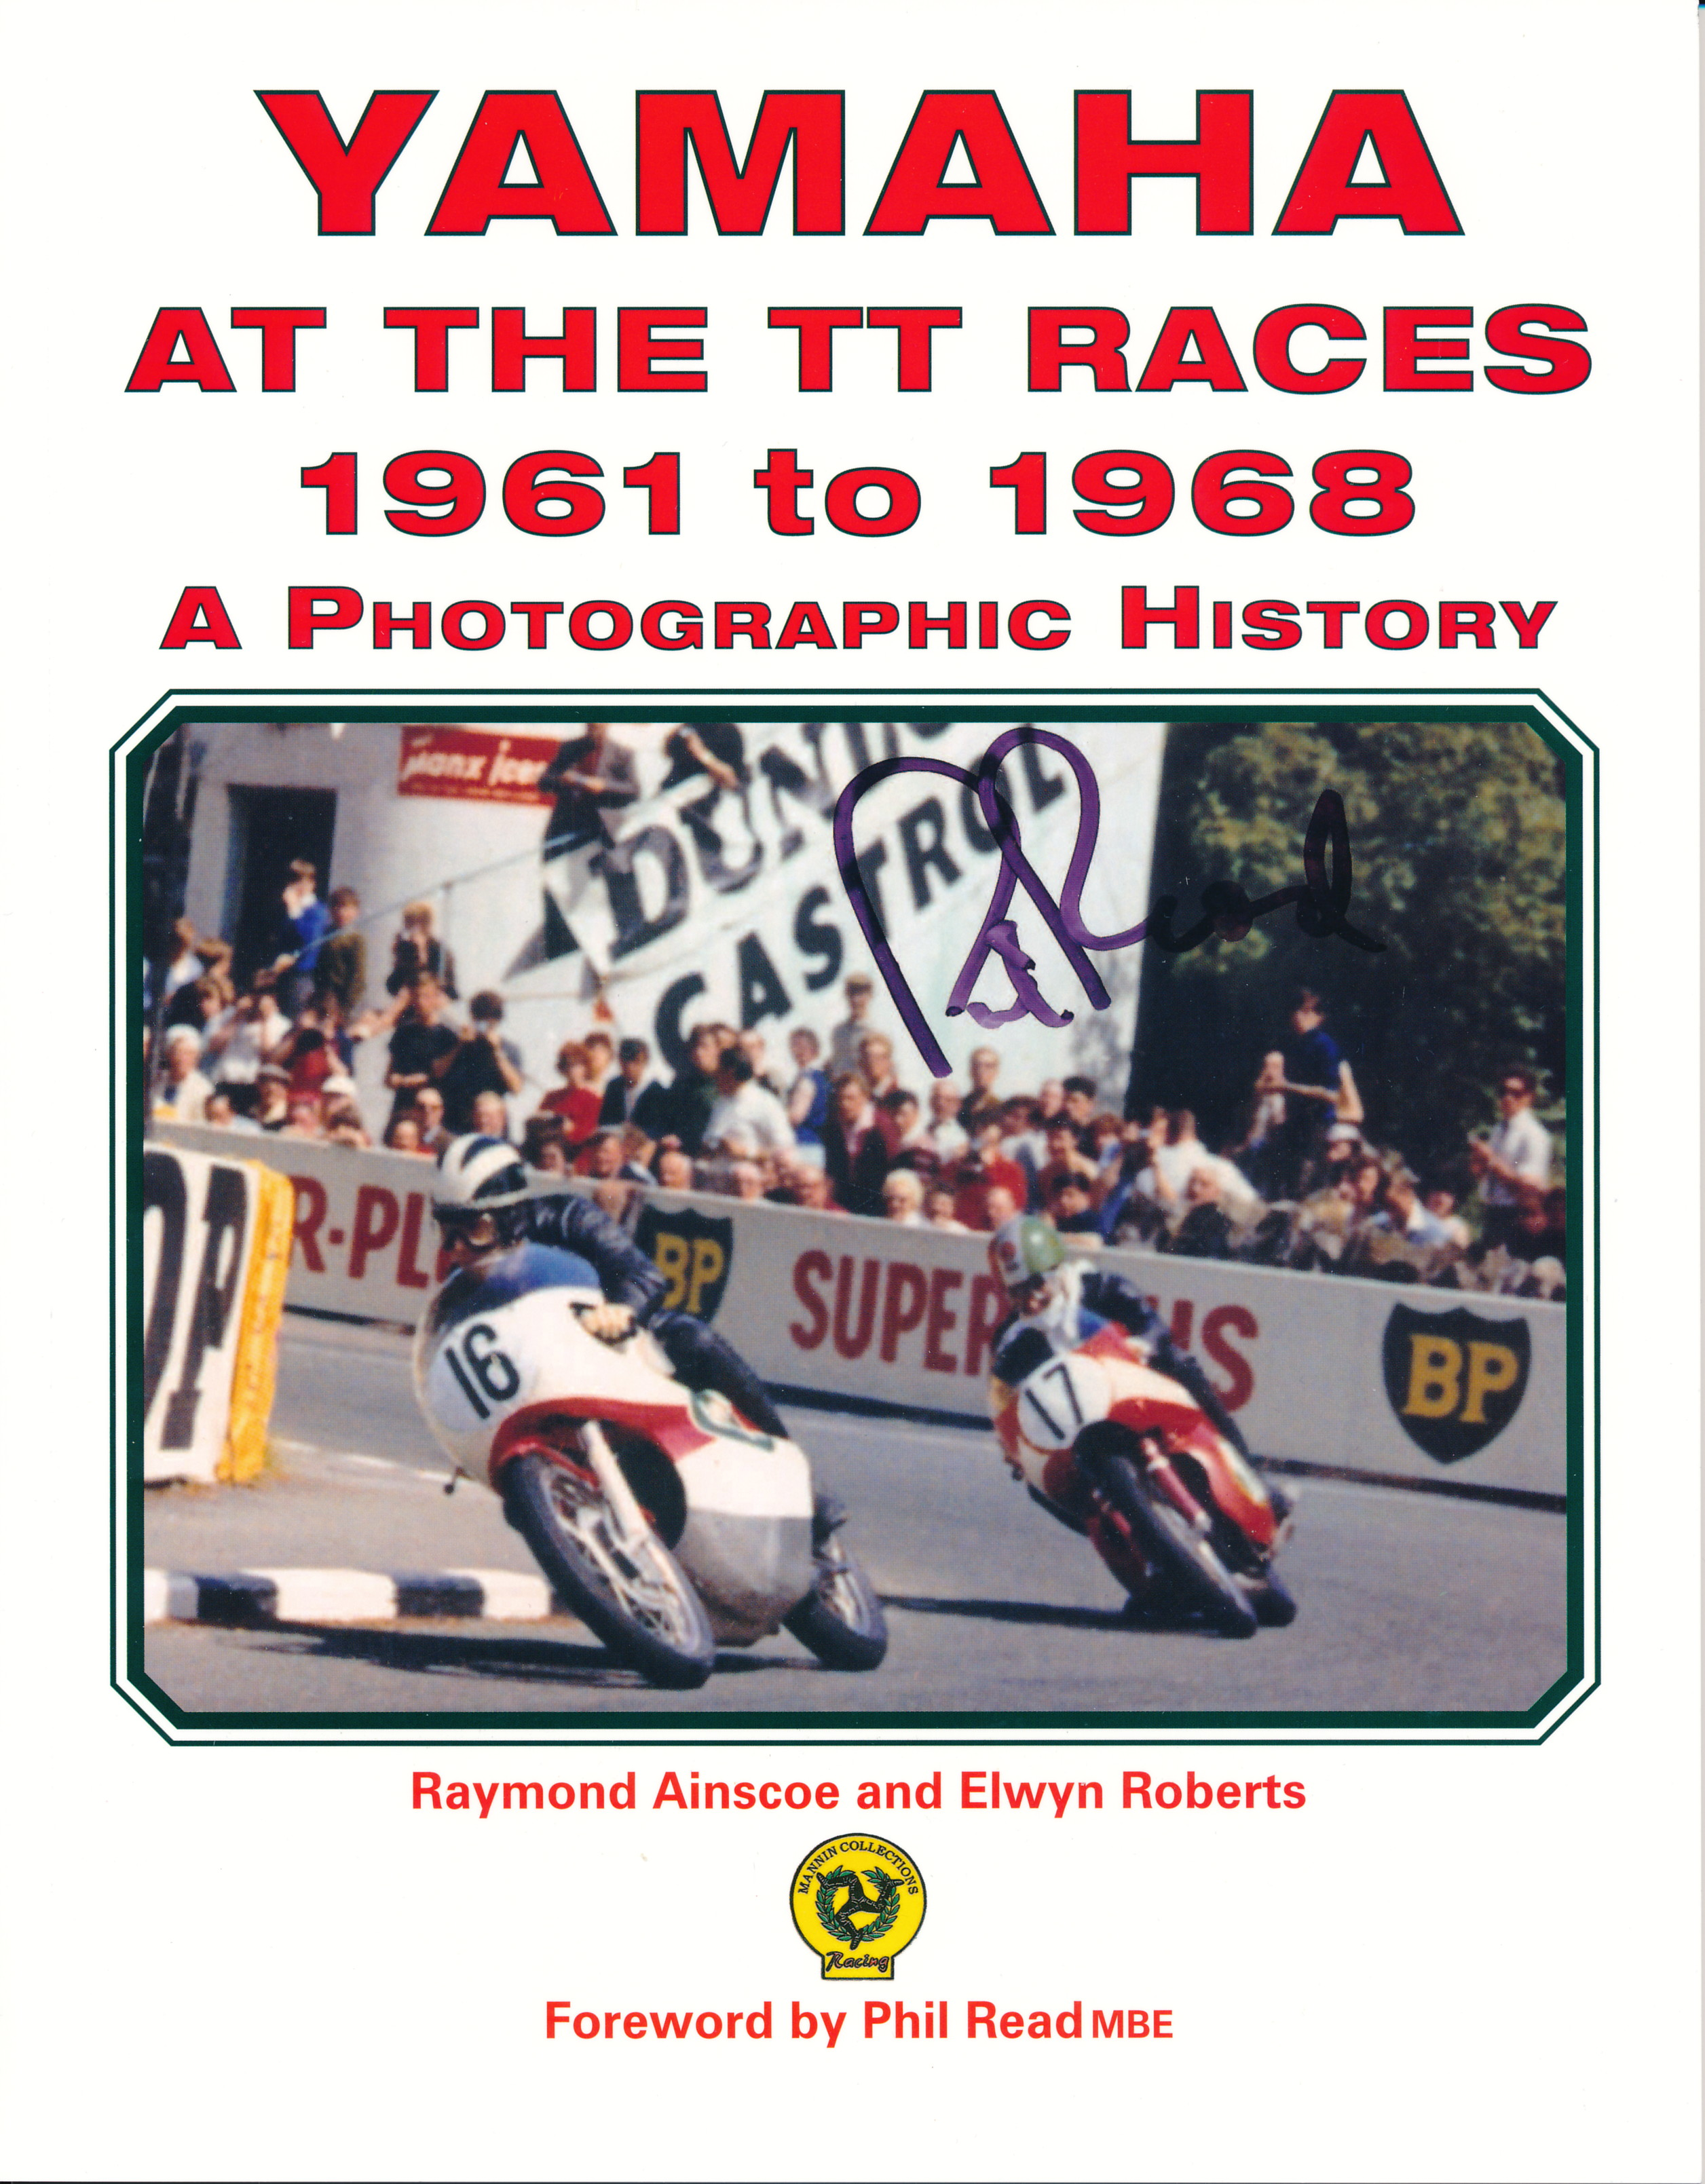 Yamaha At The TT Races 1961 to 1968